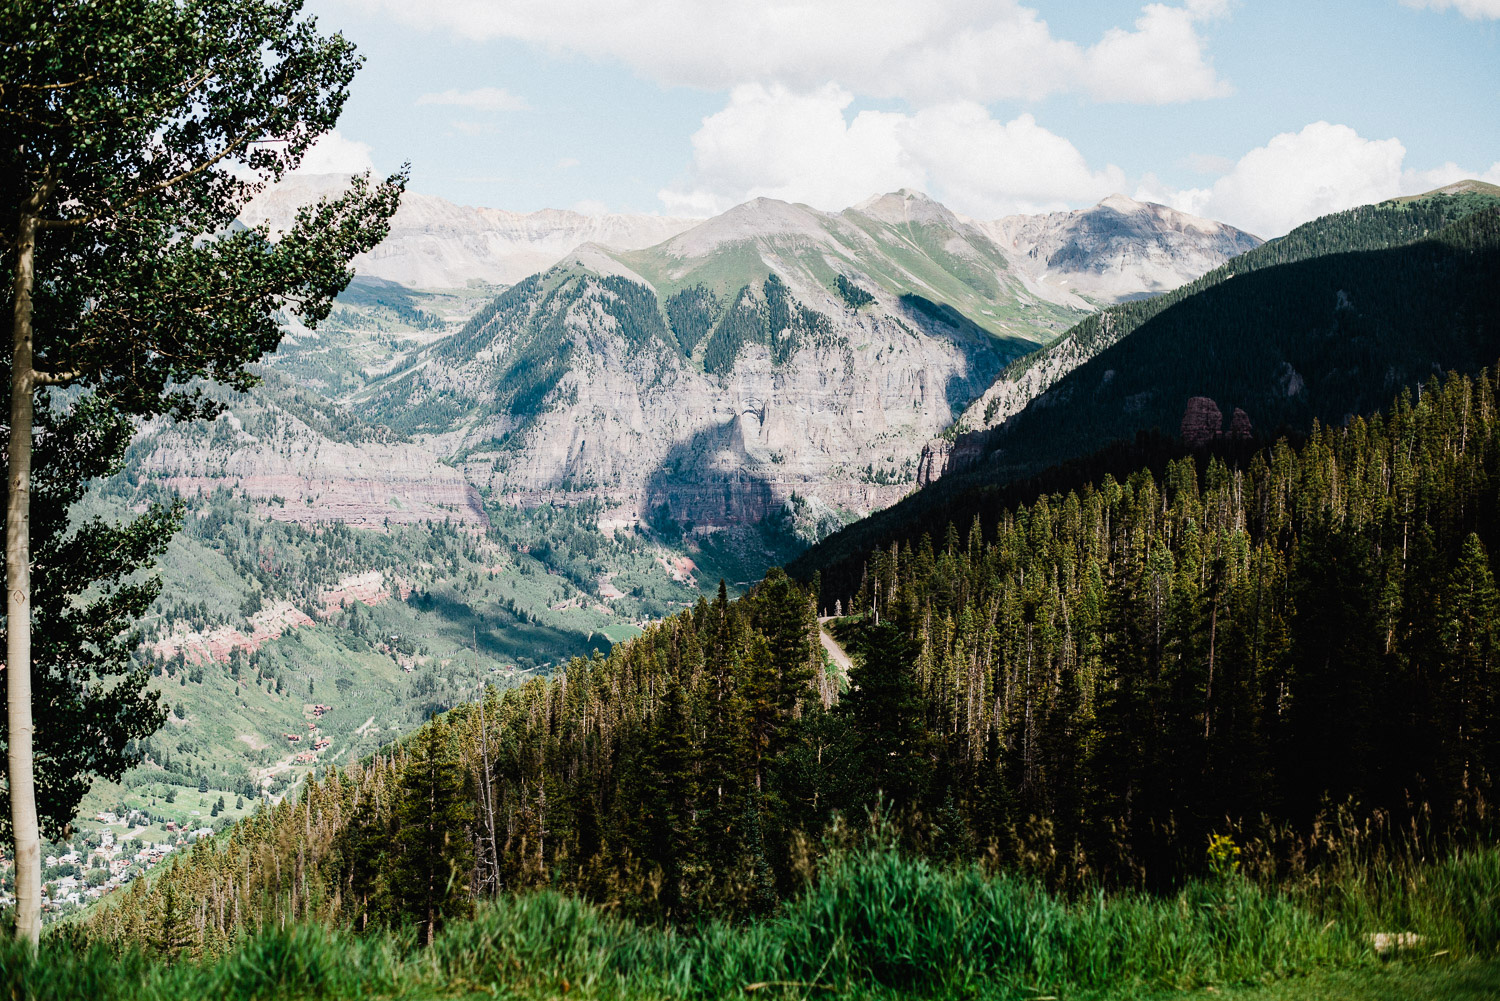 View of Telluride, Colorado from the San Sophia Overlook